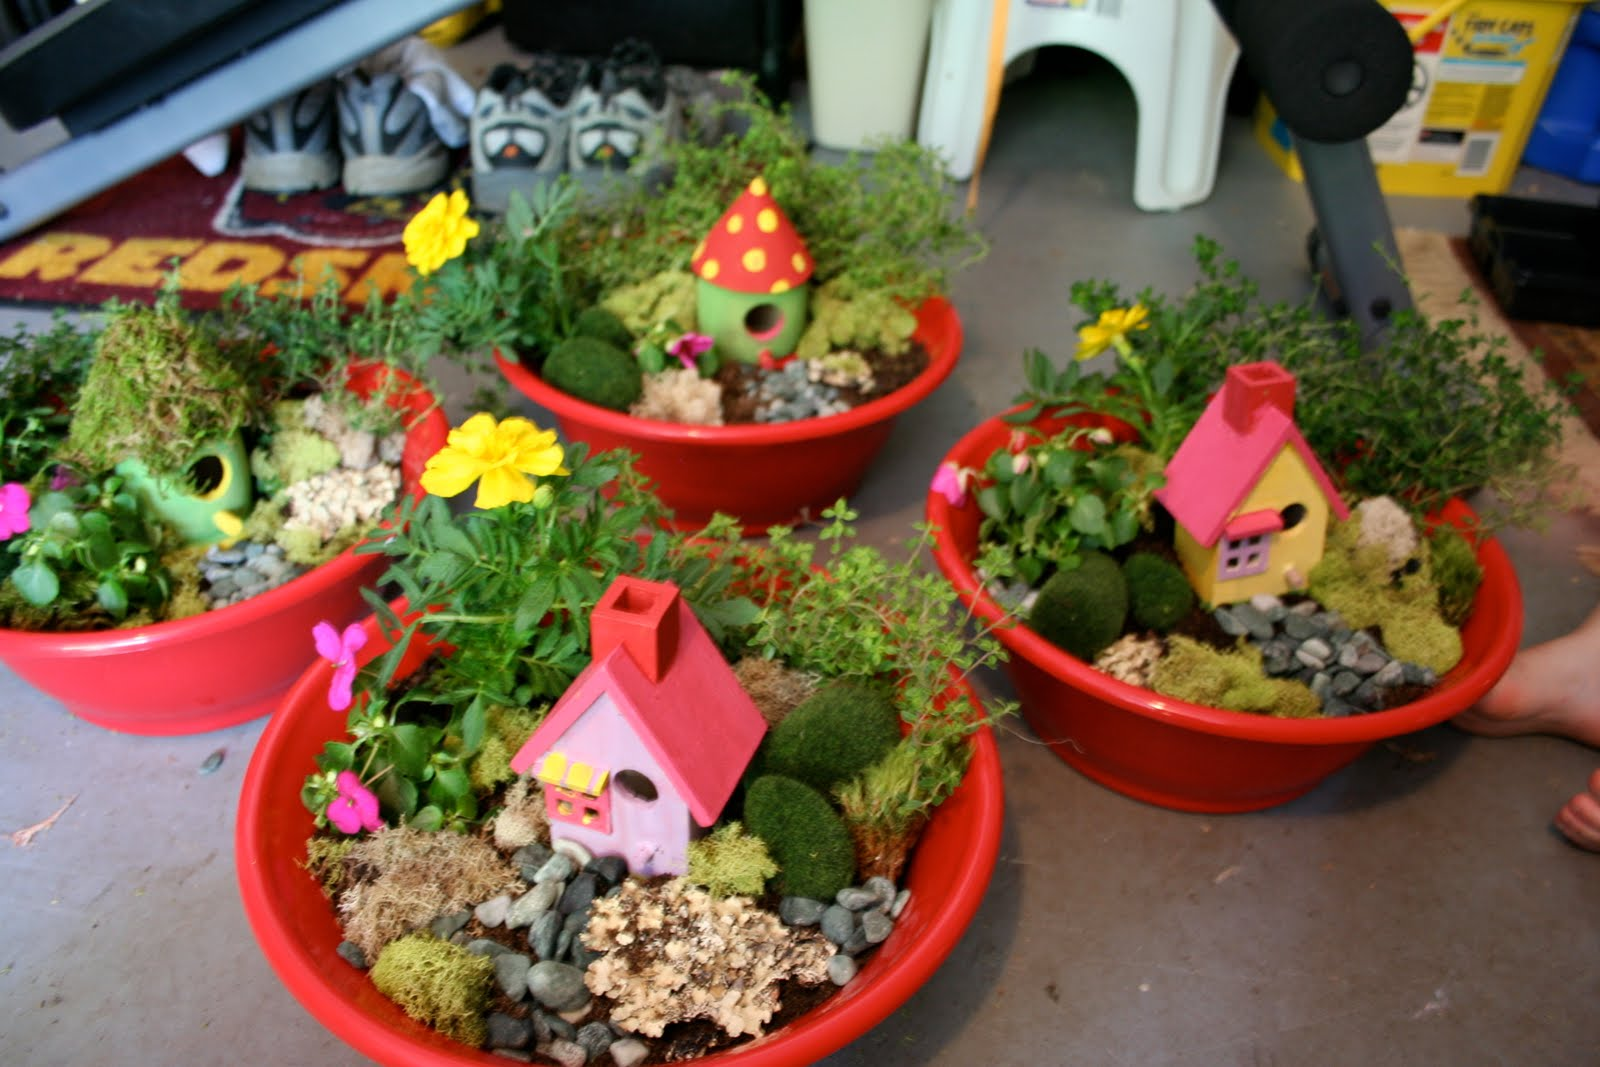 Fairy Gardens Are A Great Way To Bring Out The Imagination In Children And Fun Of Indoors